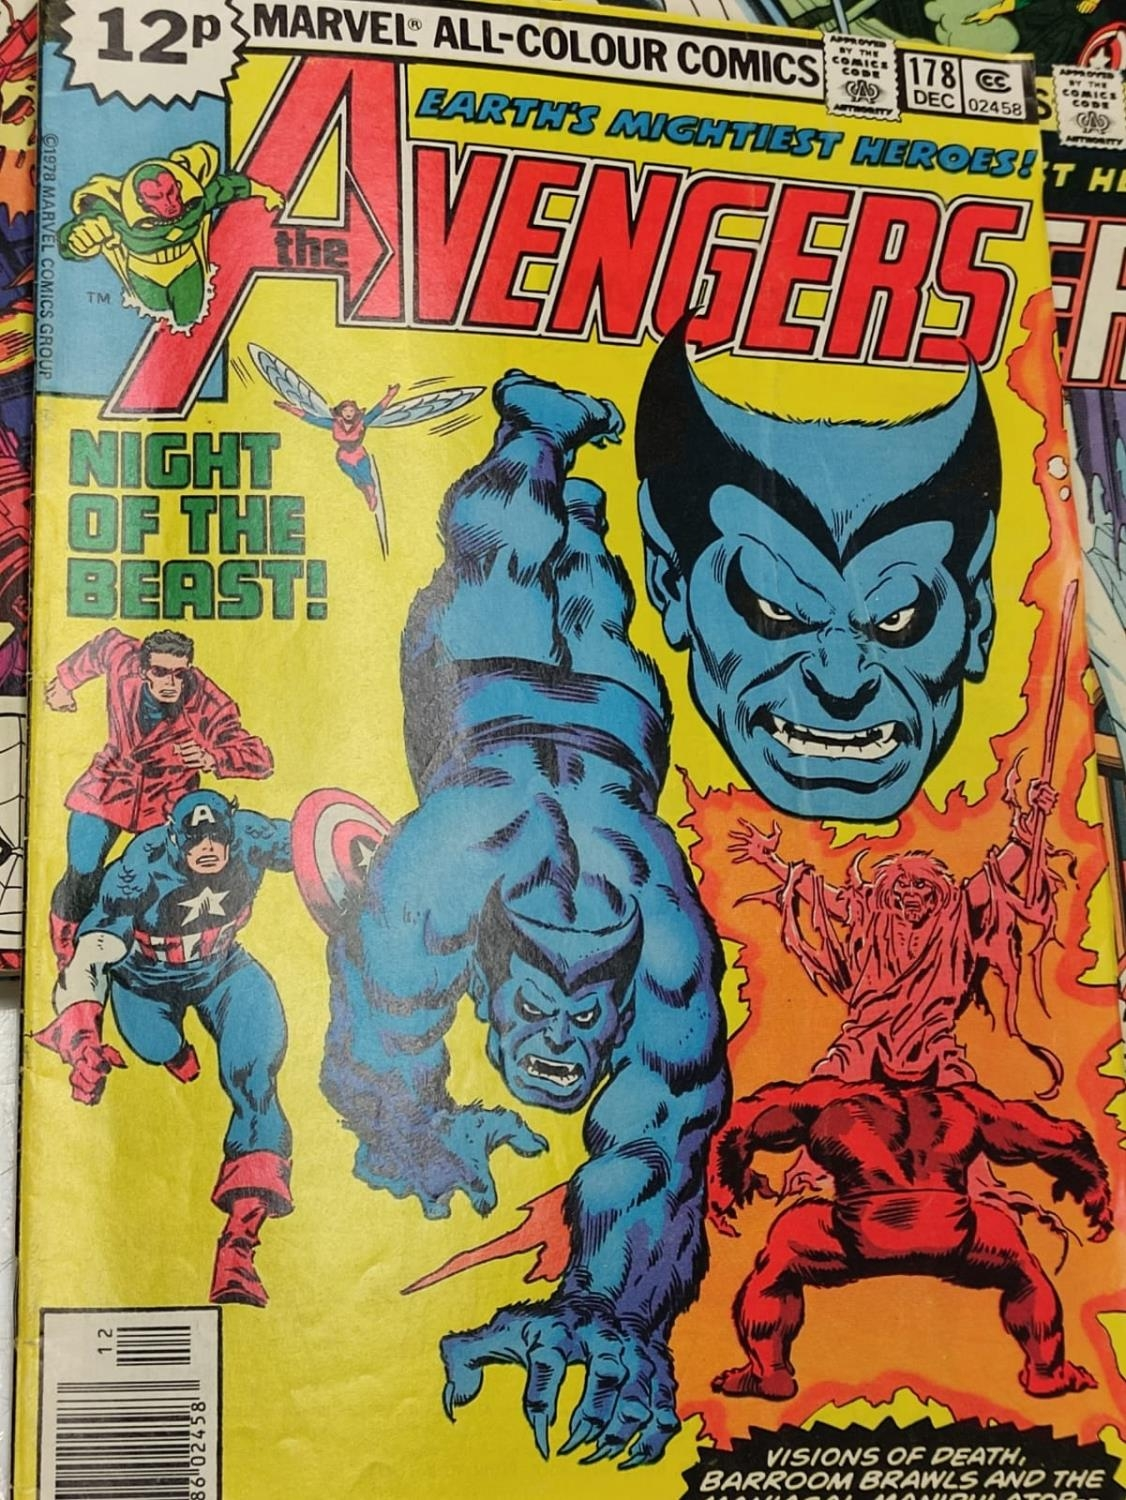 17 editions of Vintage Marvel 'The Avengers' comics in very good condition. - Image 11 of 12